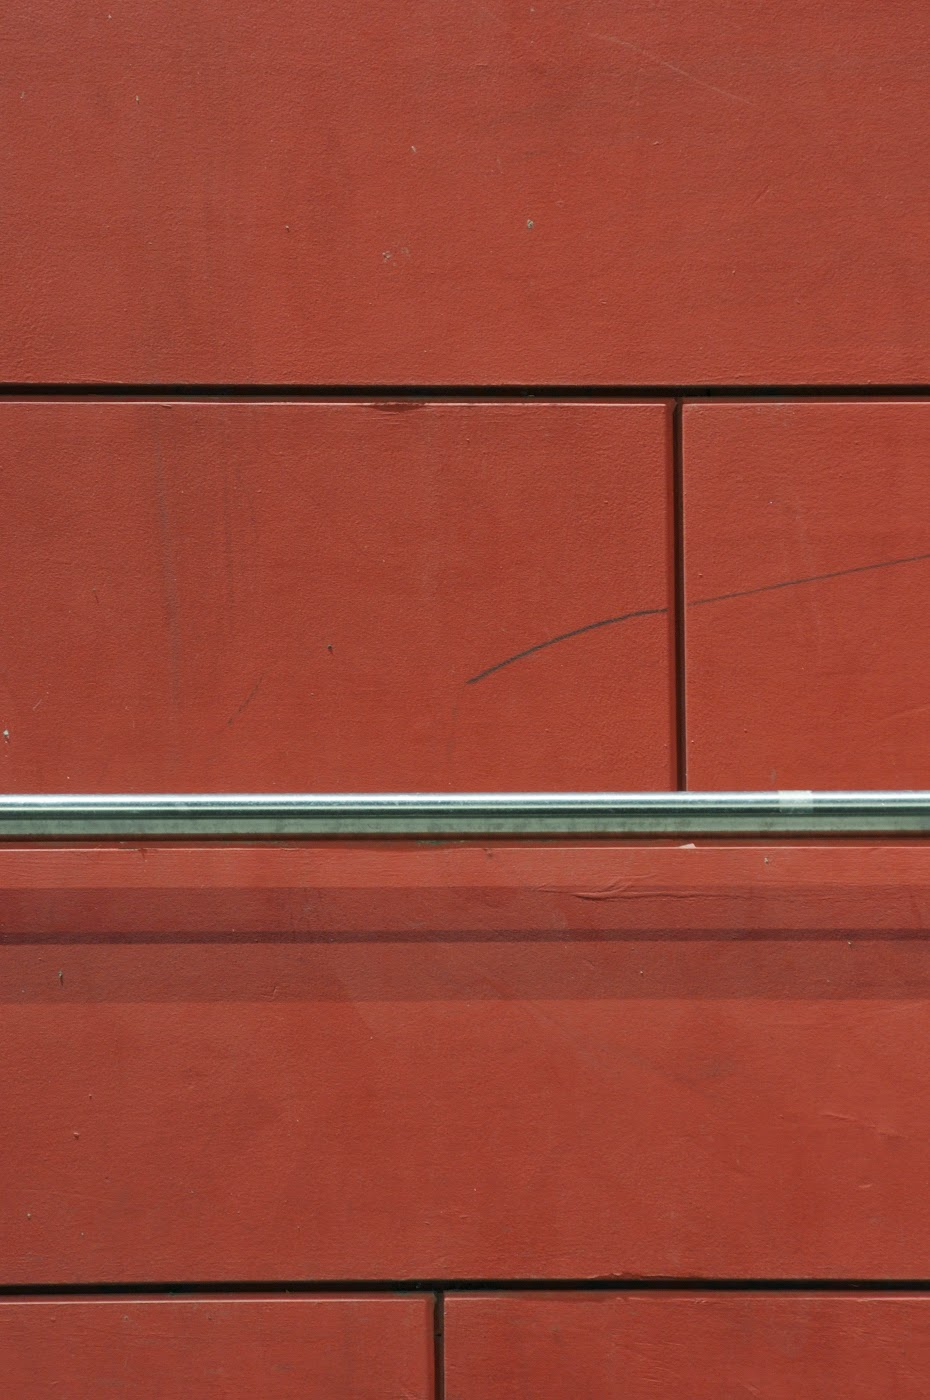 Marcus O'Reilly, Marcus oreilly, red steps, red stairs, southbank, Melbourne, Australia, abstract, abstraction, TKTS, structure, distinctive, tim macauley, detail, façade, abstractional, architect, architectural, architects, tim macauley, the light monkey collective, i now know what it's like to live in a jukebox, postmodern